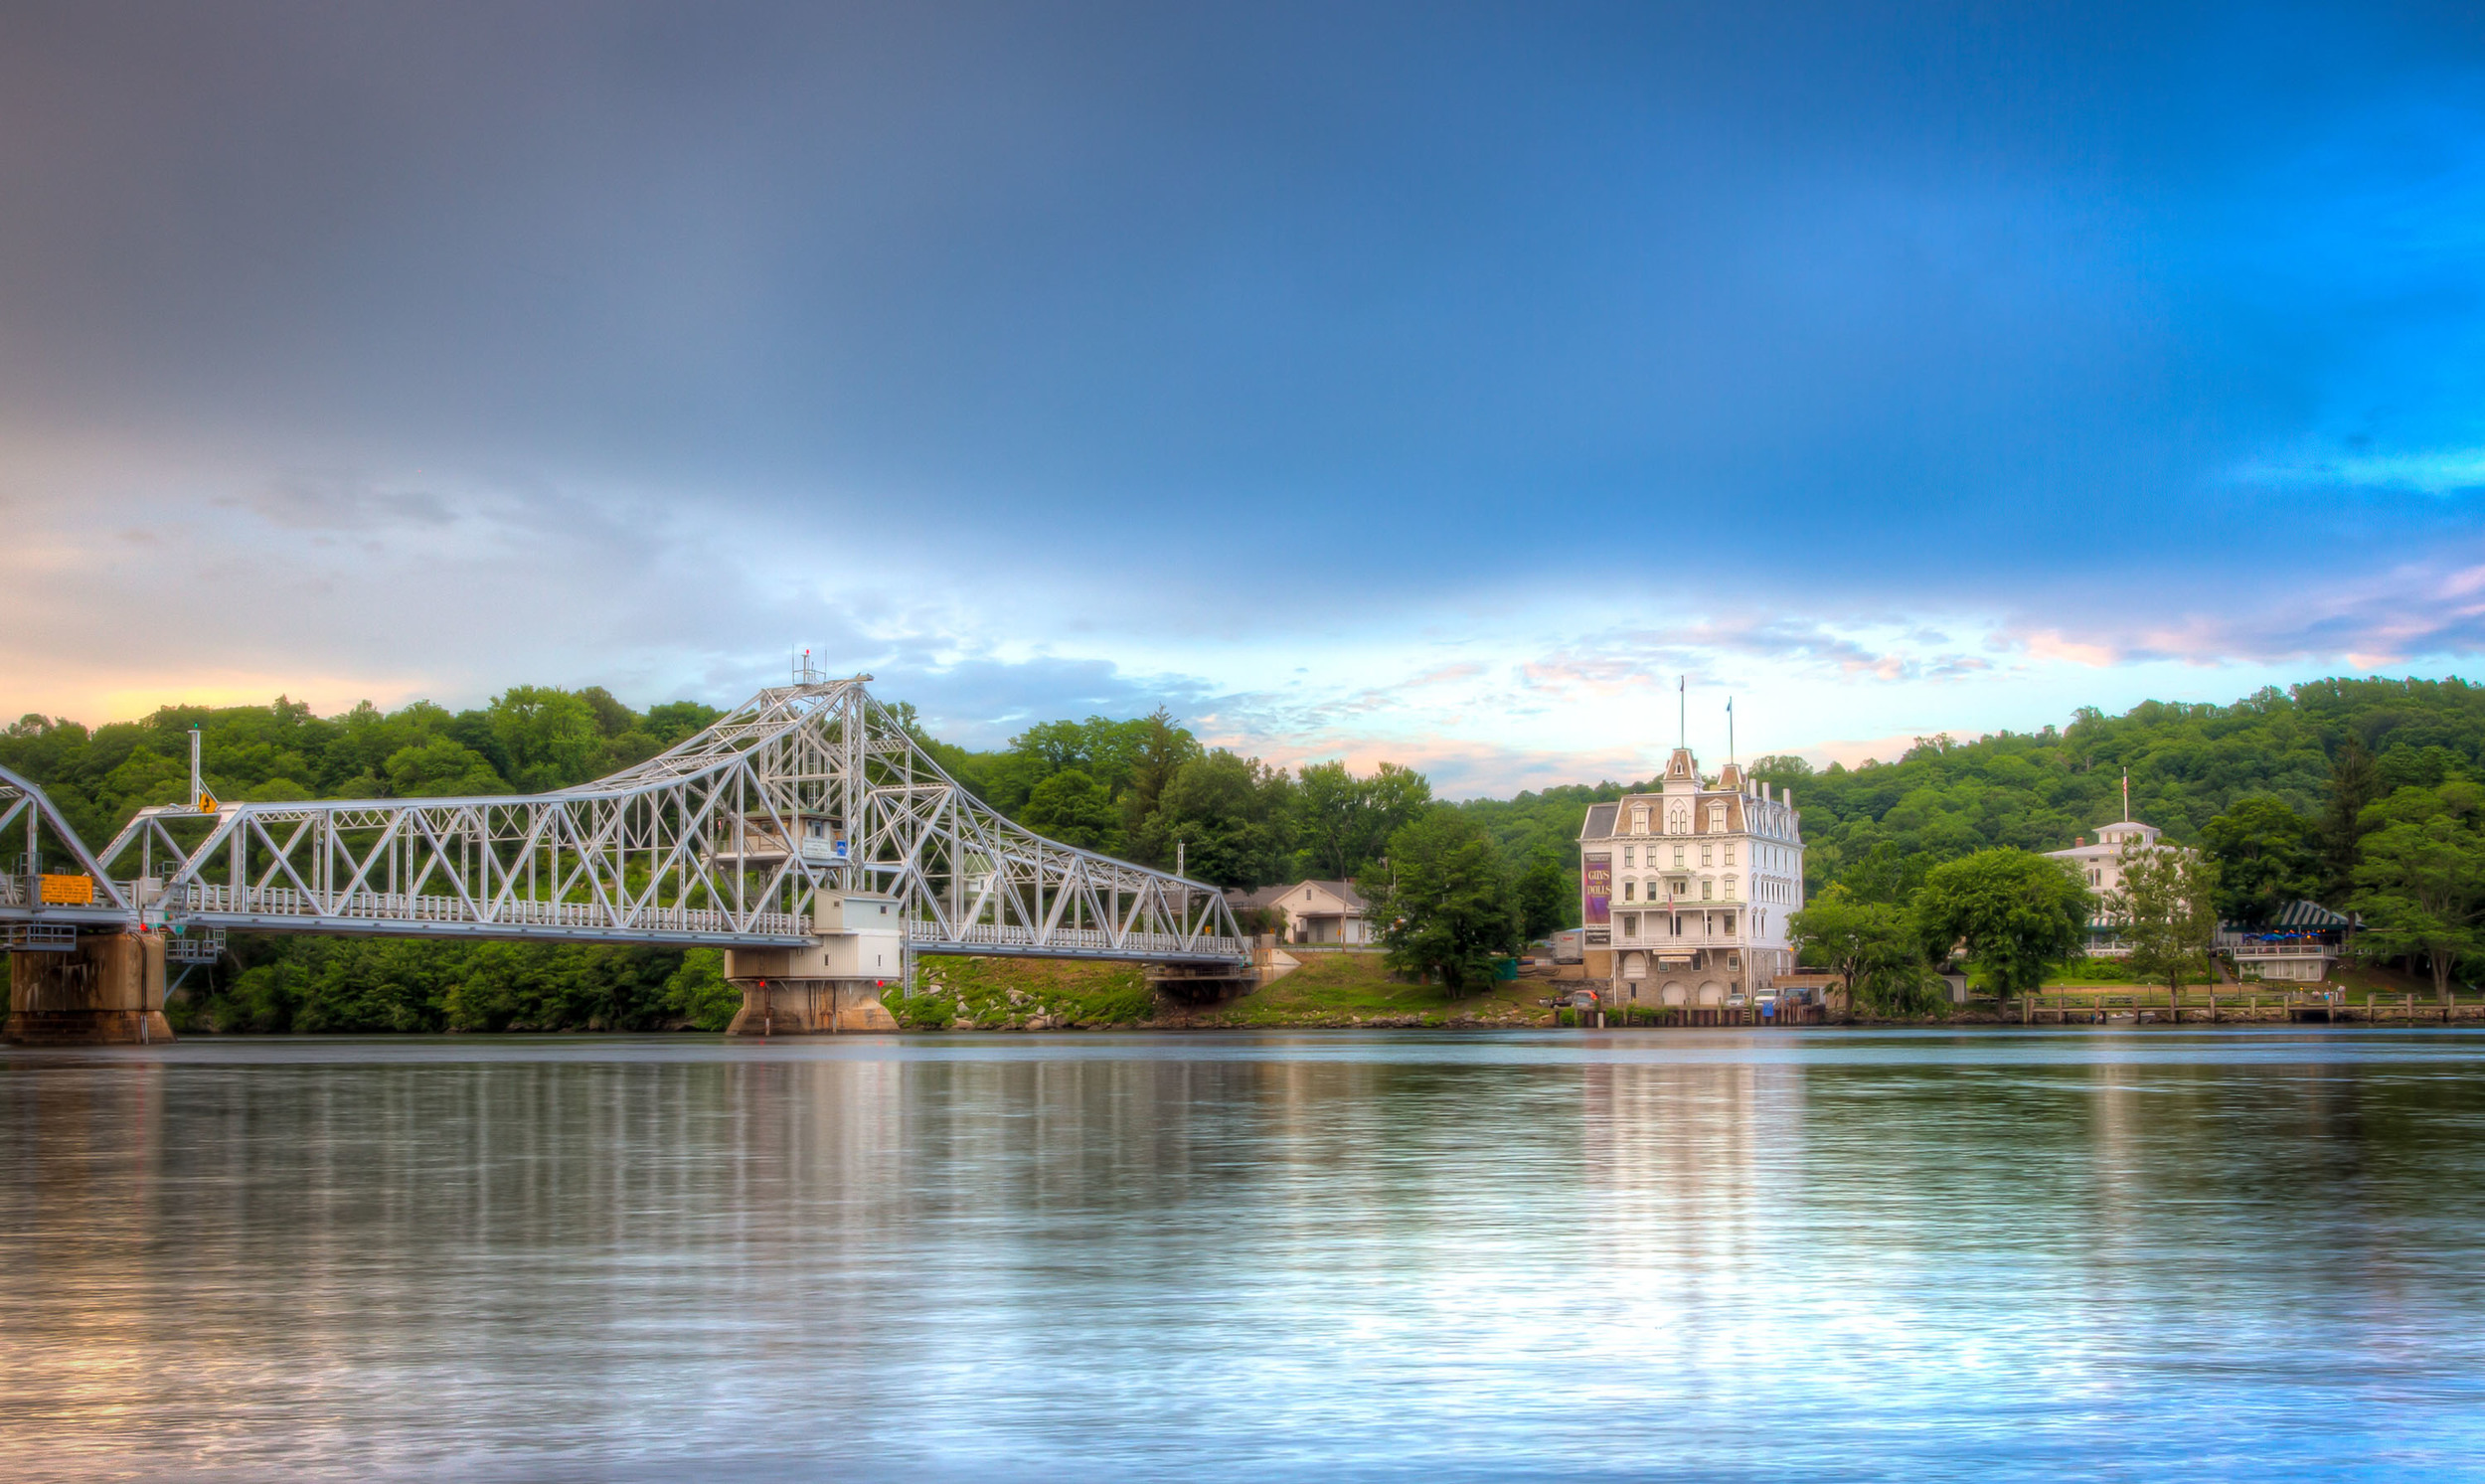 Looking across at the Haddam bridge and Goodspeed Opera House